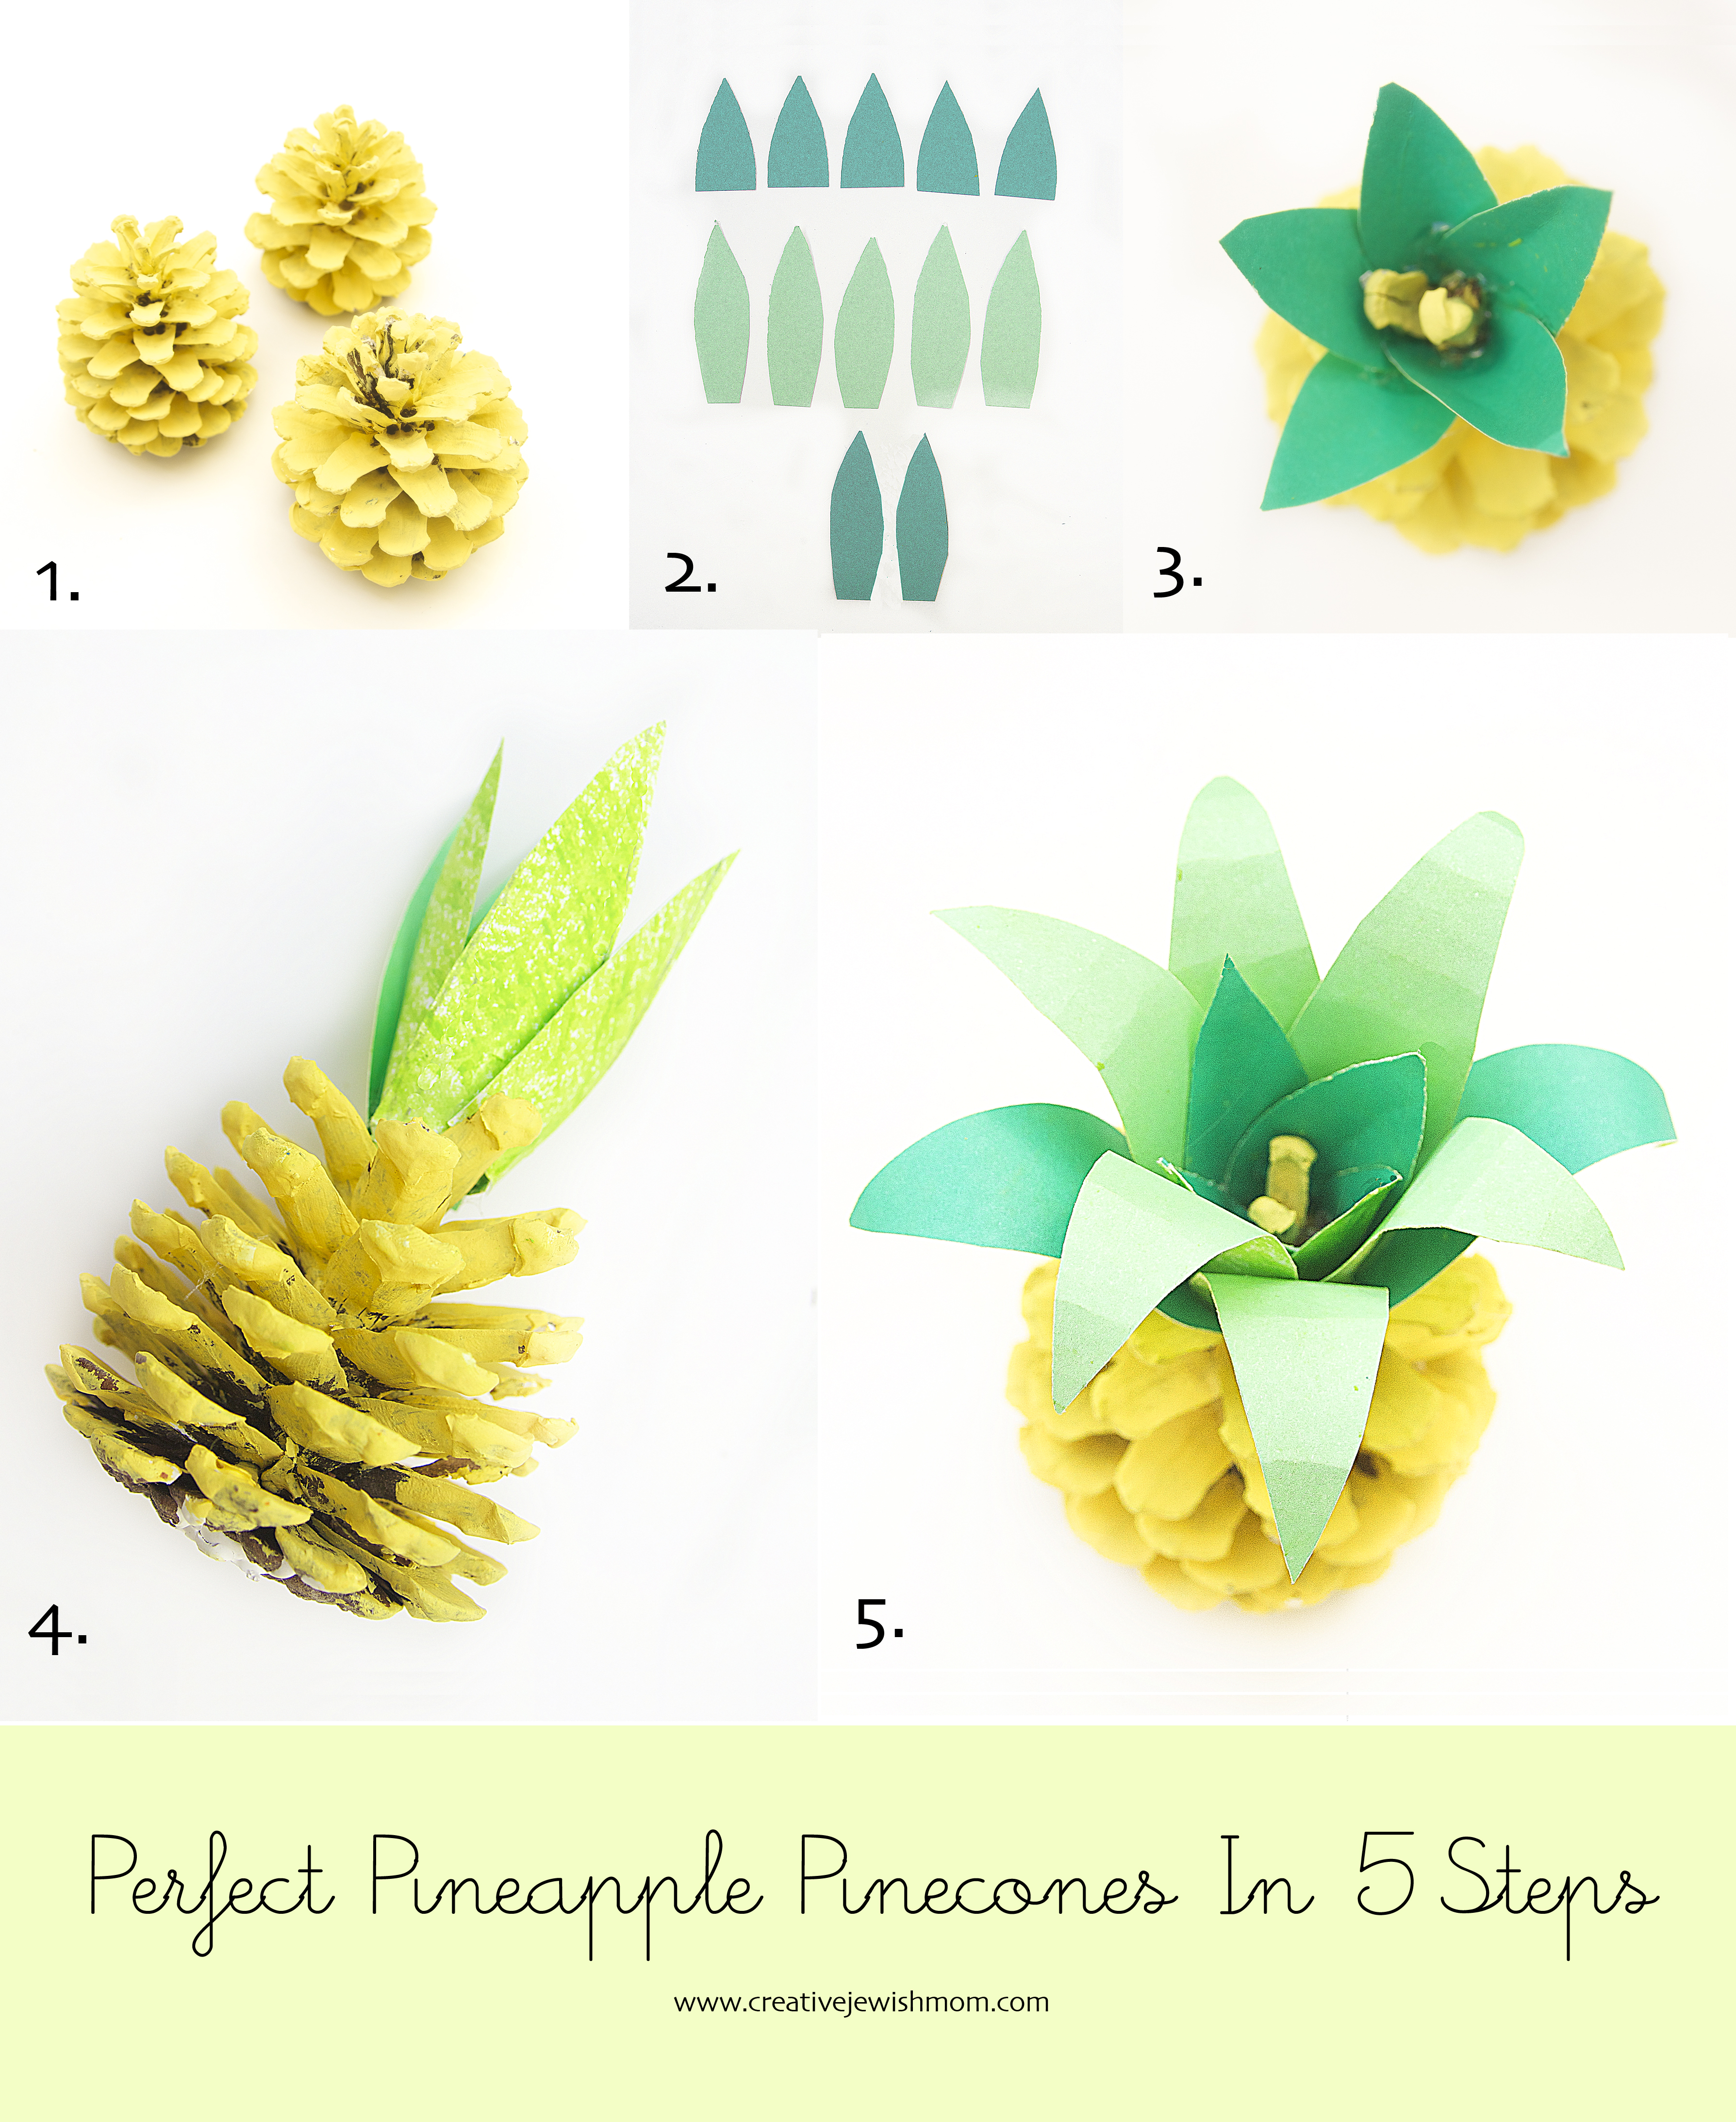 Pineapple Pinecone Craft Is My New Favorite Creative